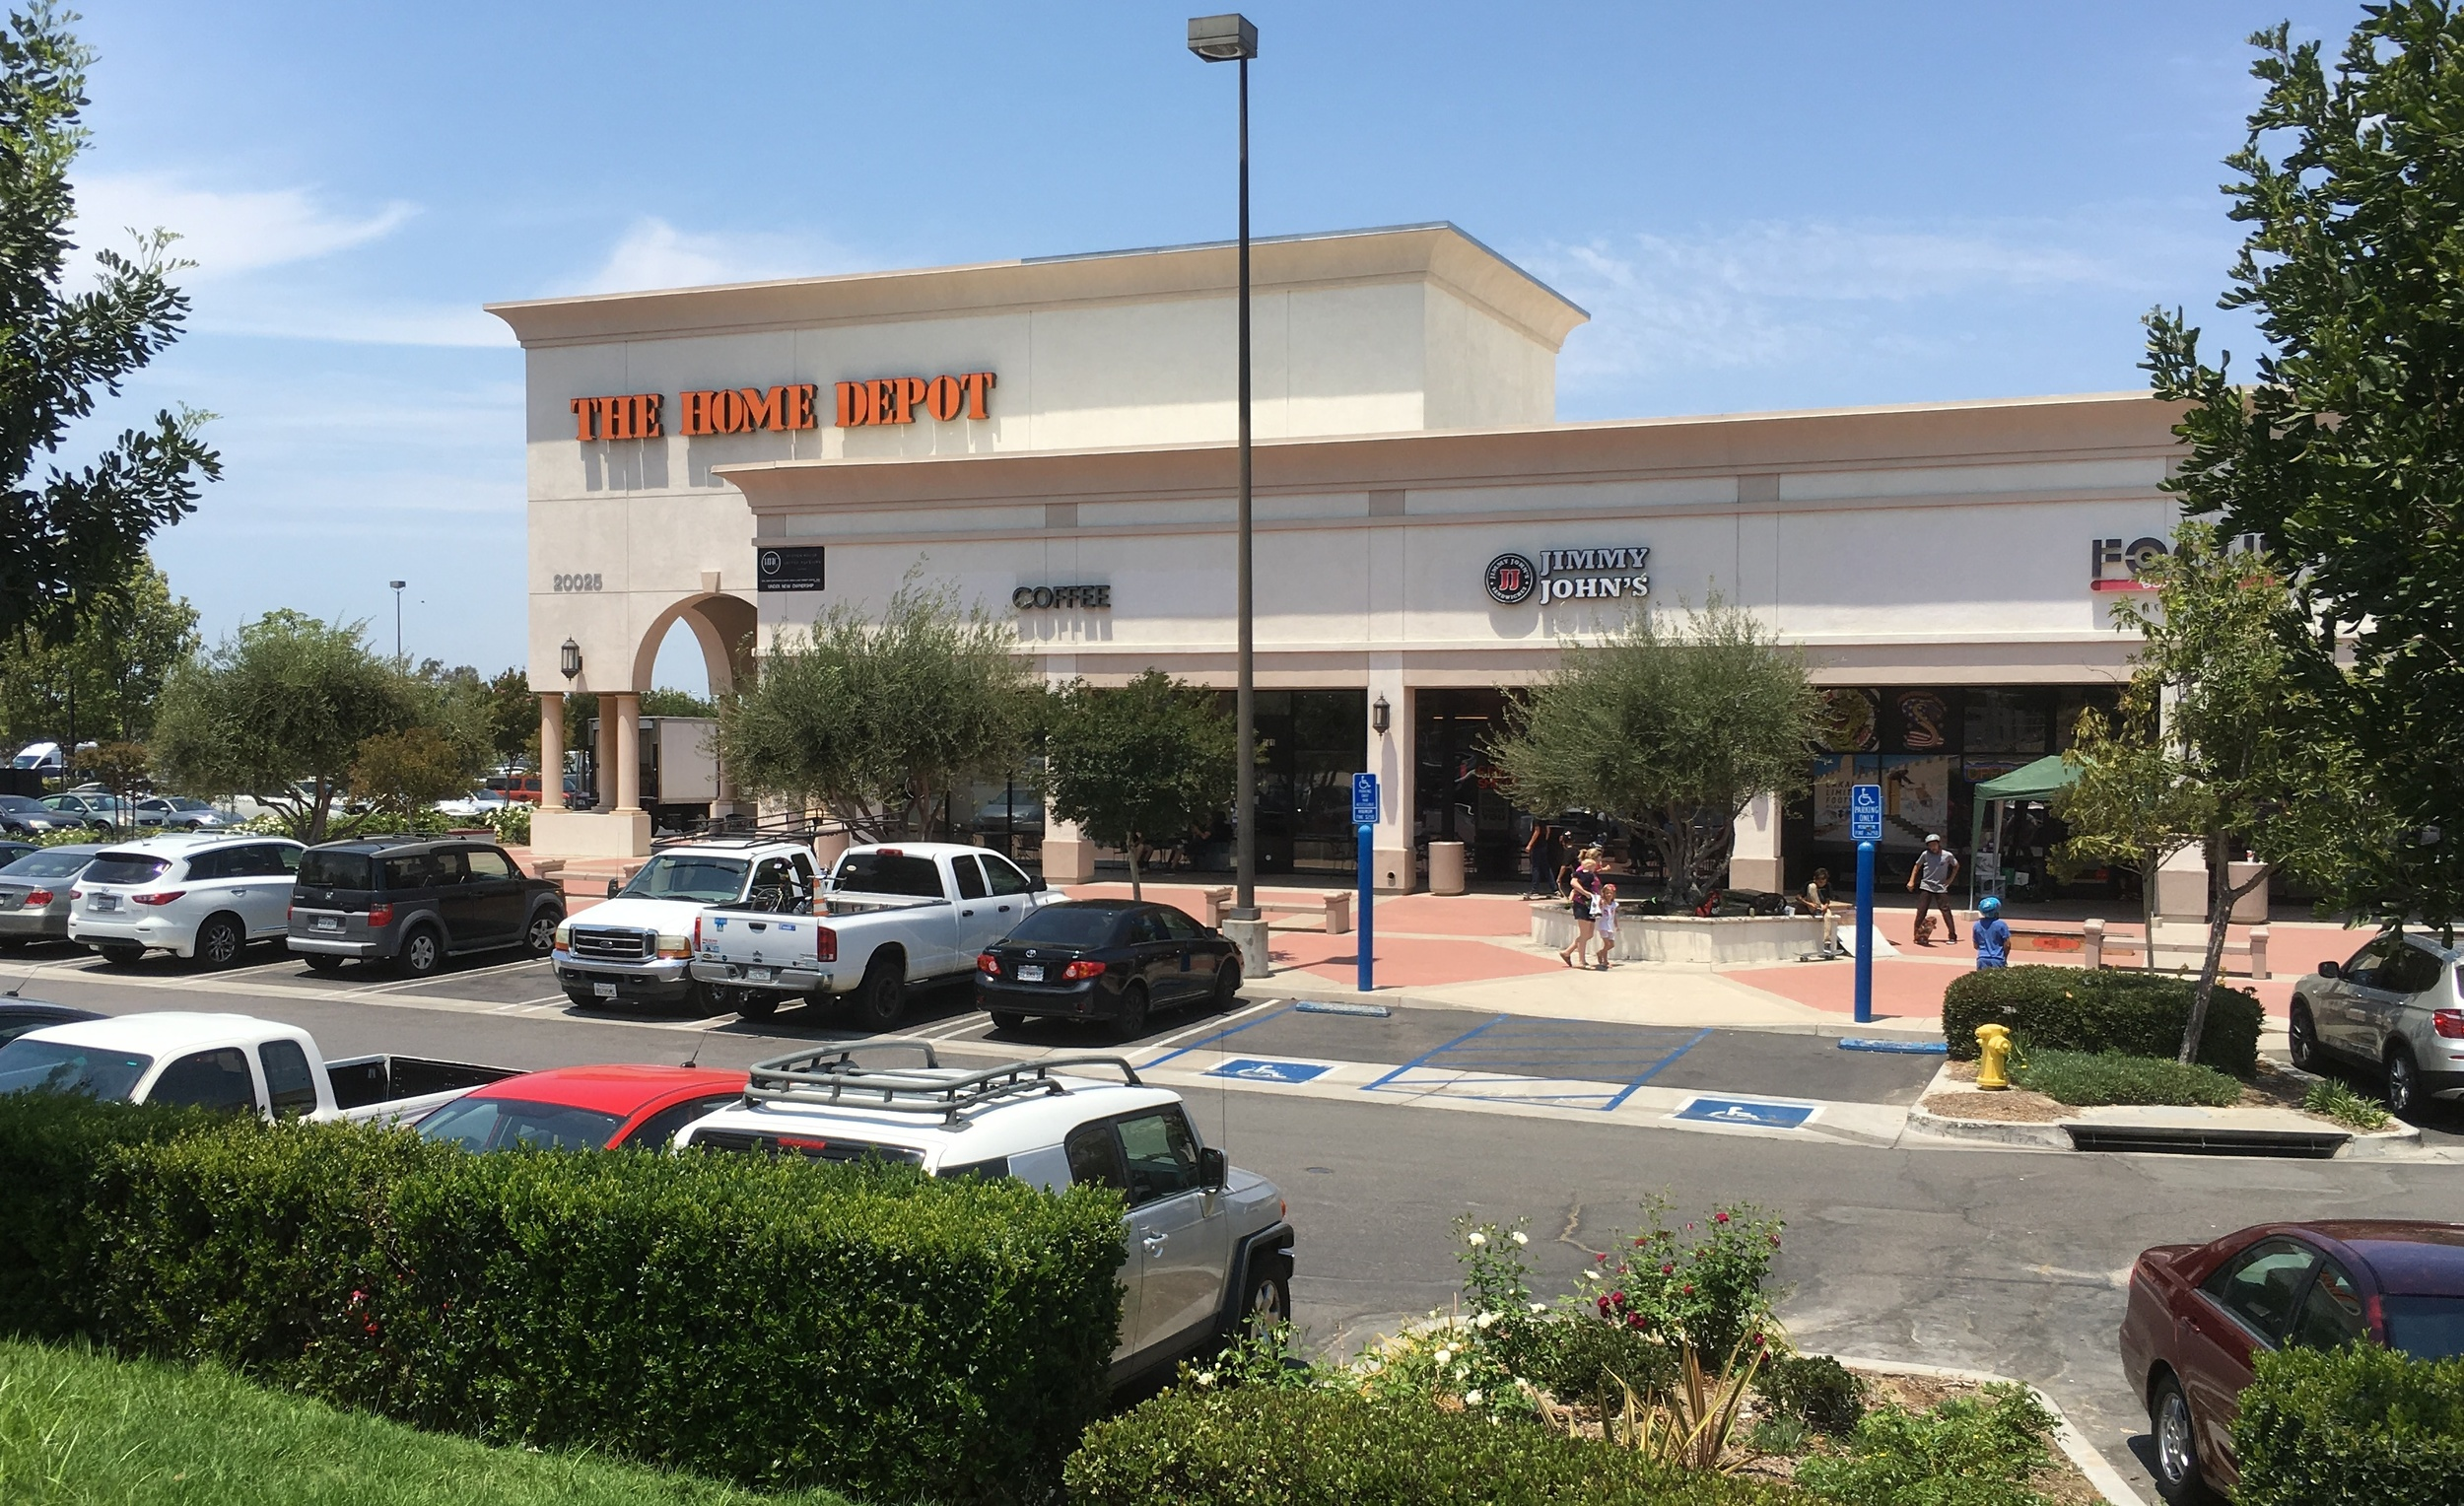 The Home Depot Shopping Center,  20025 Lake Forest Dr #101, Lake Forest   92630